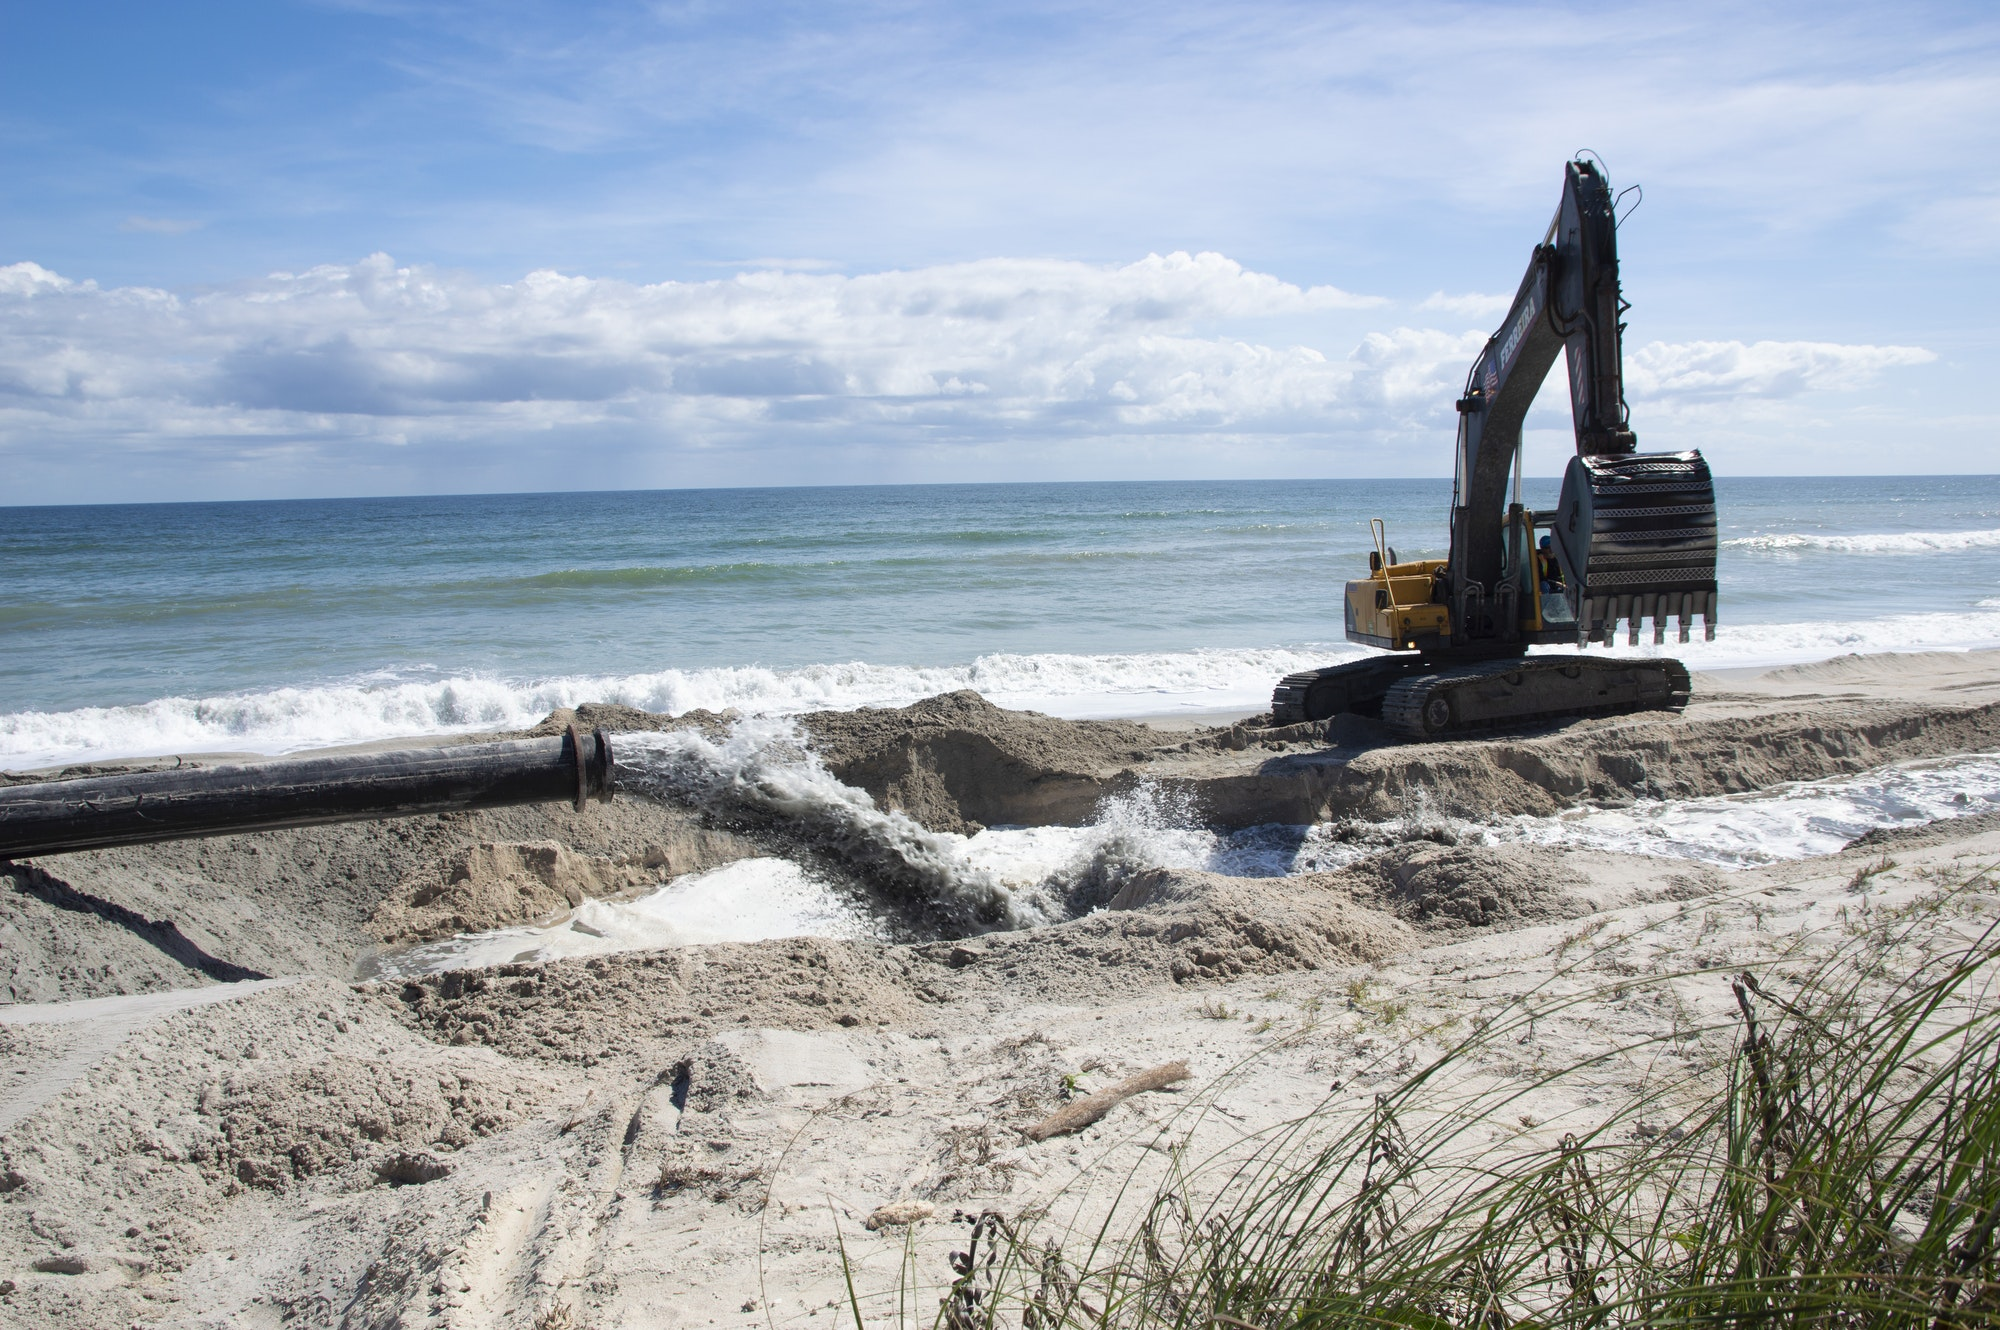 dredge pipe pumping water and sand into dike with heavy equipment